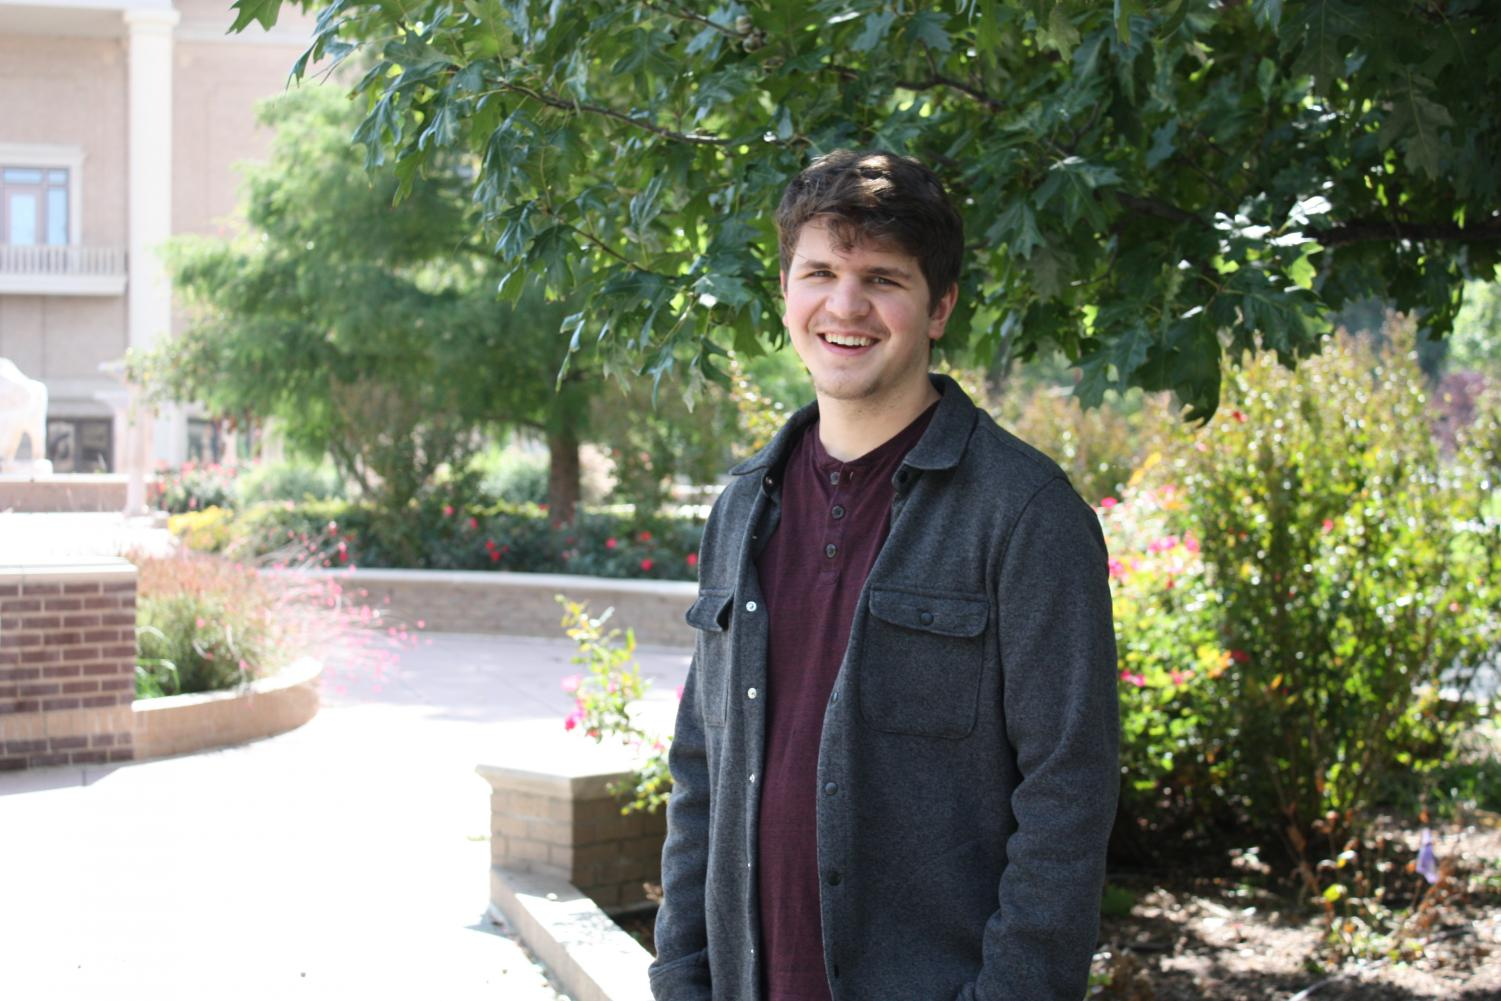 Junior English major Aaron Akins will have his essay published in the Spring 2019 edition of the Sigma Tau Delta Review.